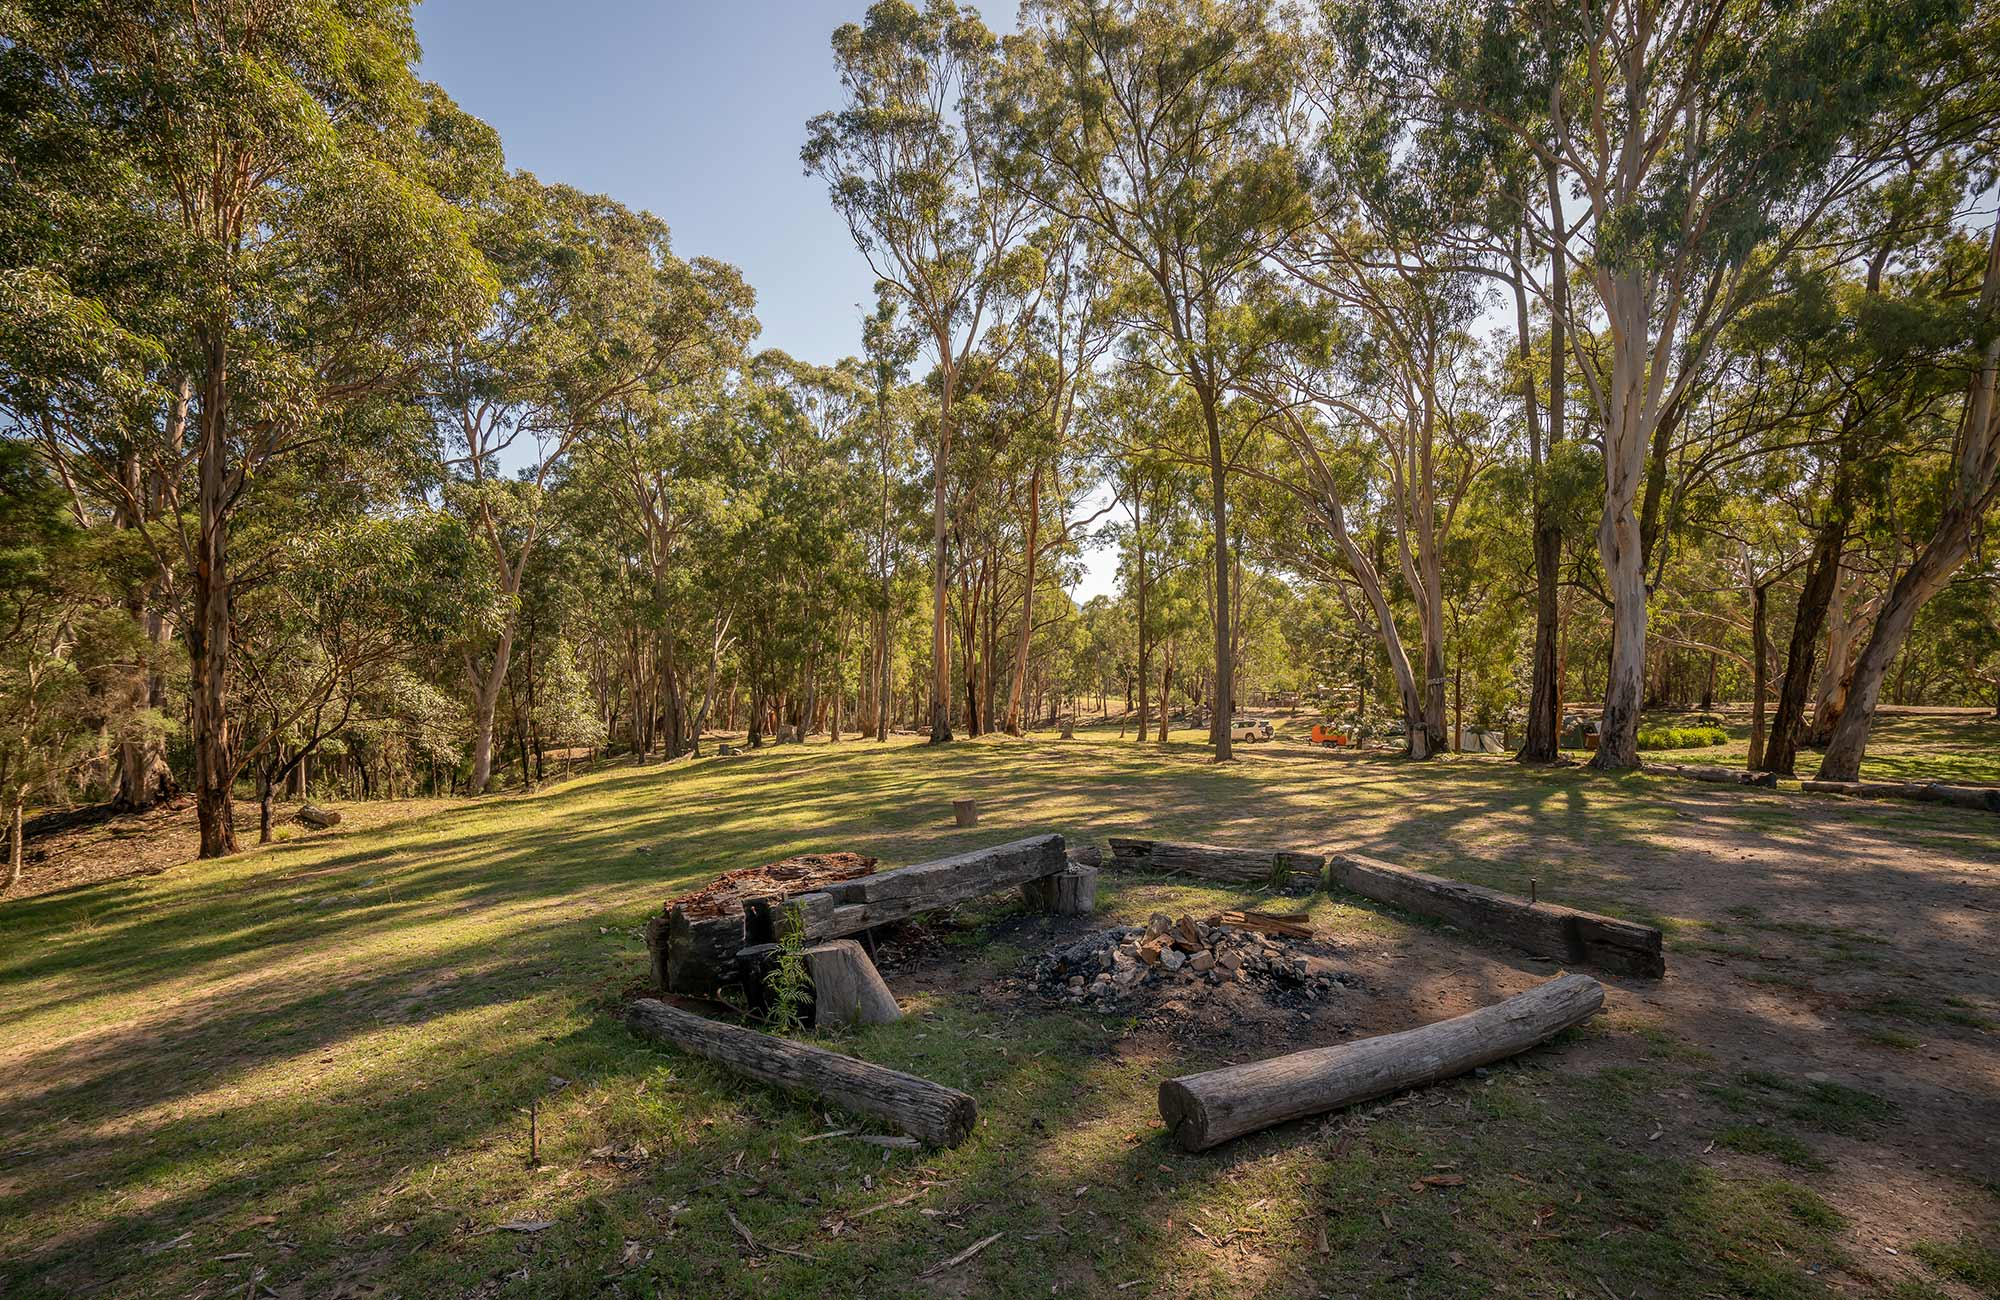 Fire pit surrounded by log seats at Private Town campground in Yerranderie Regional Park. Photo: John Spencer/OEH